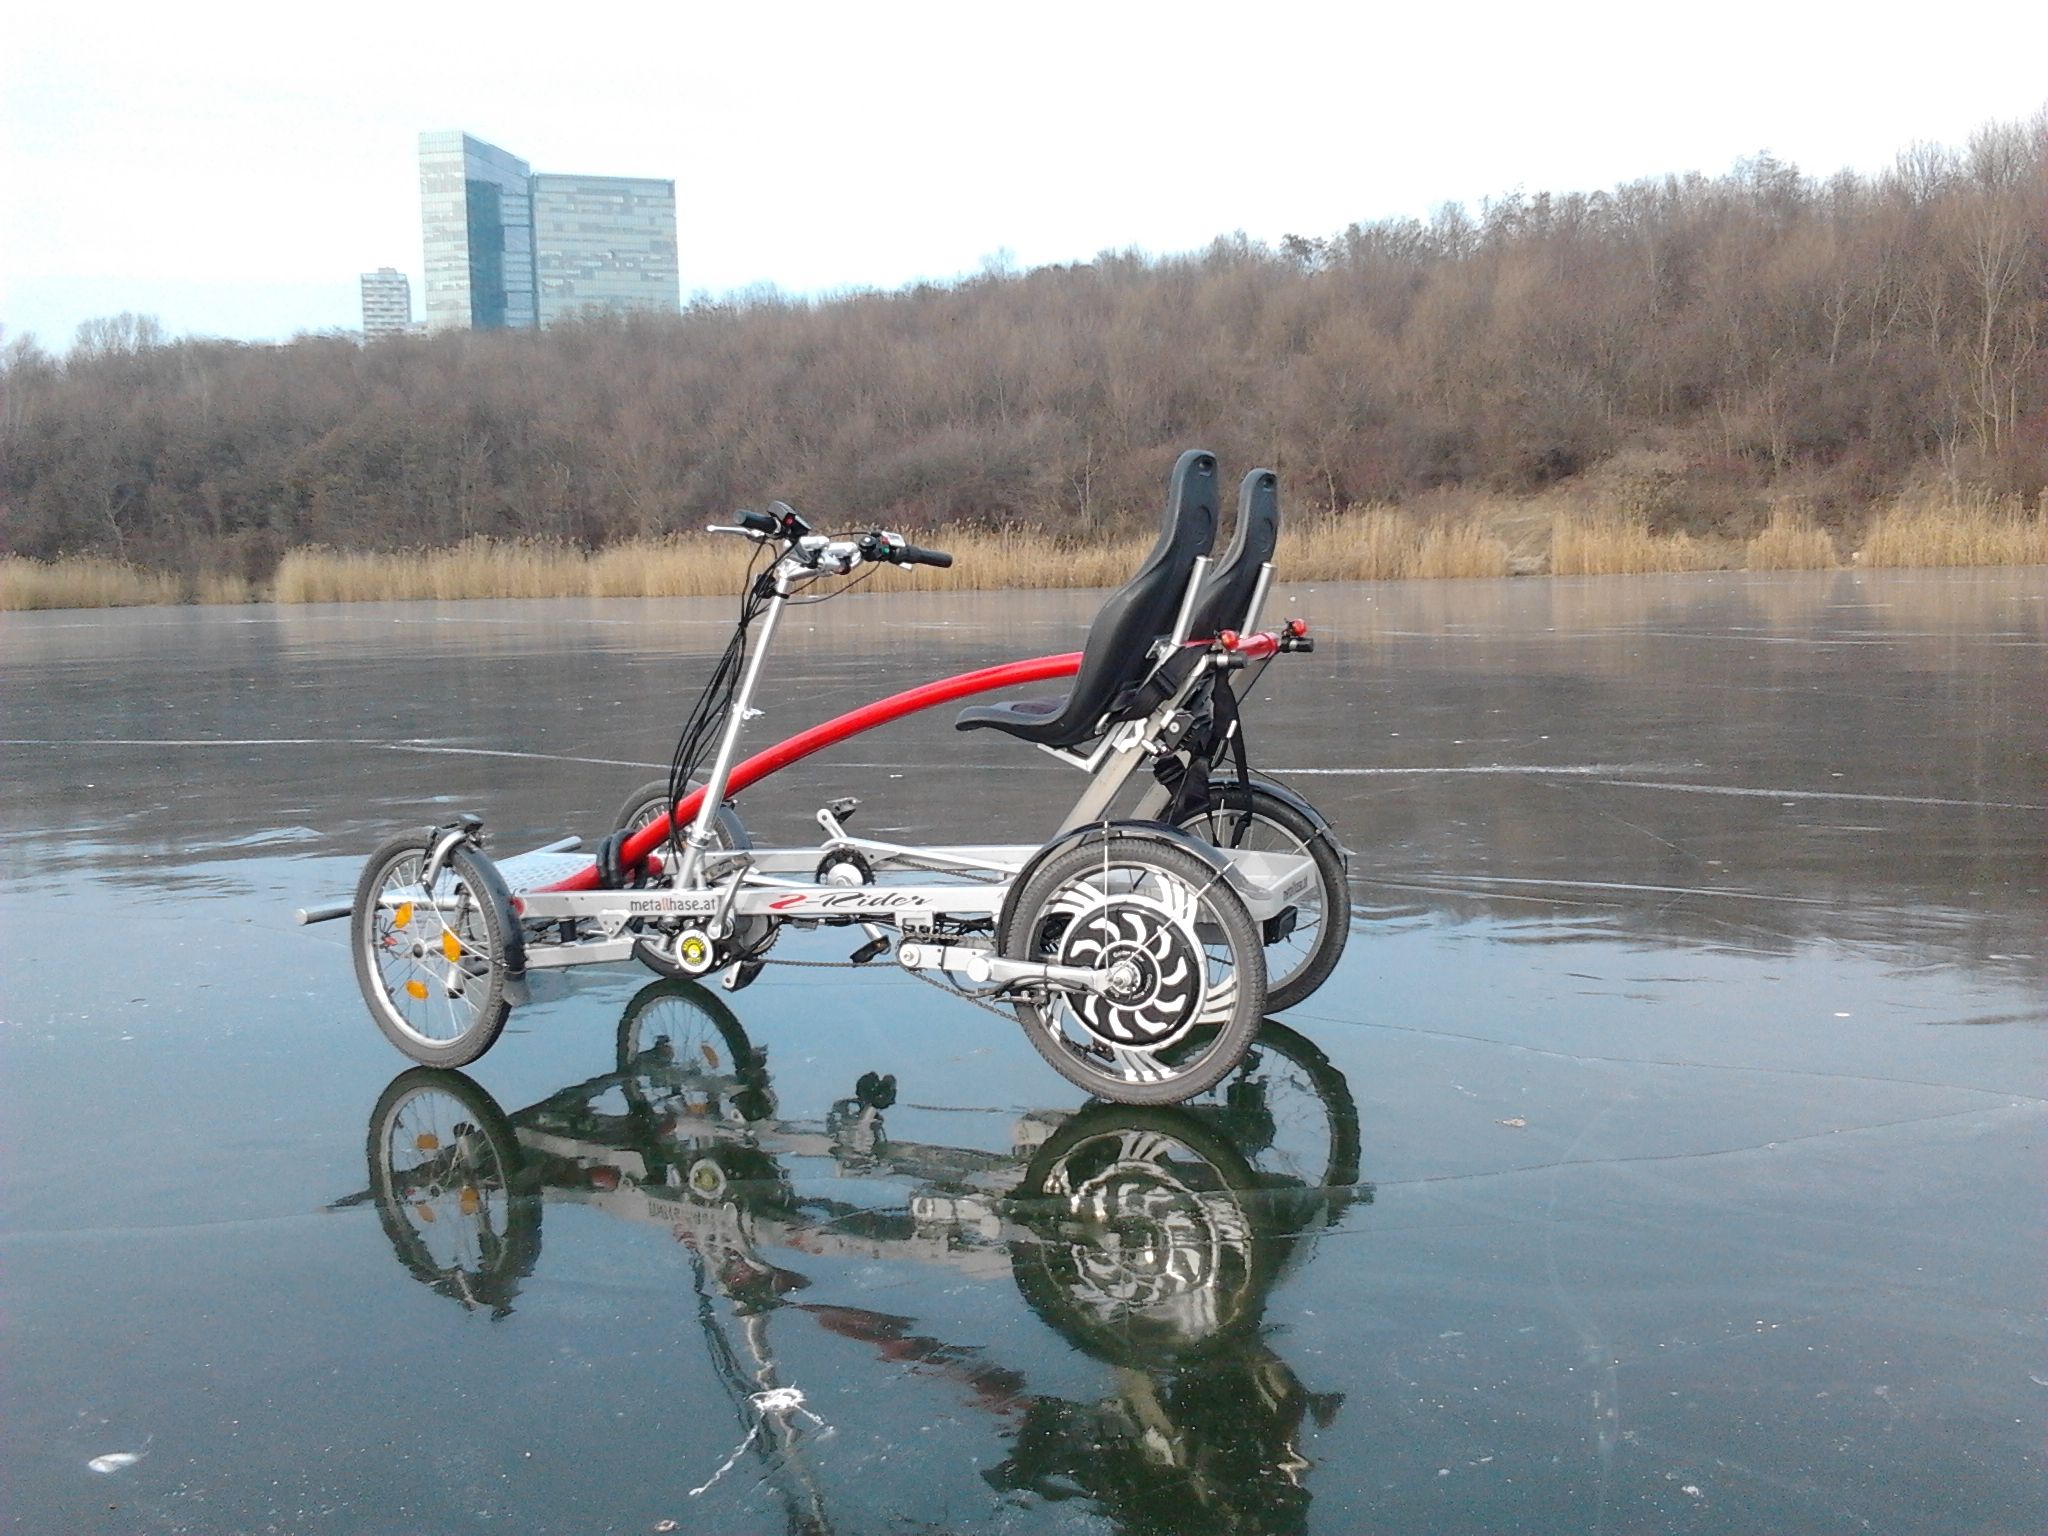 "Bestens geeignet für den Winter, der ""-Rider am Eis! Hier am Wienerbergteich in Wien - ""-Rider 4-wheel bike riding on ice - easy cheesy!"